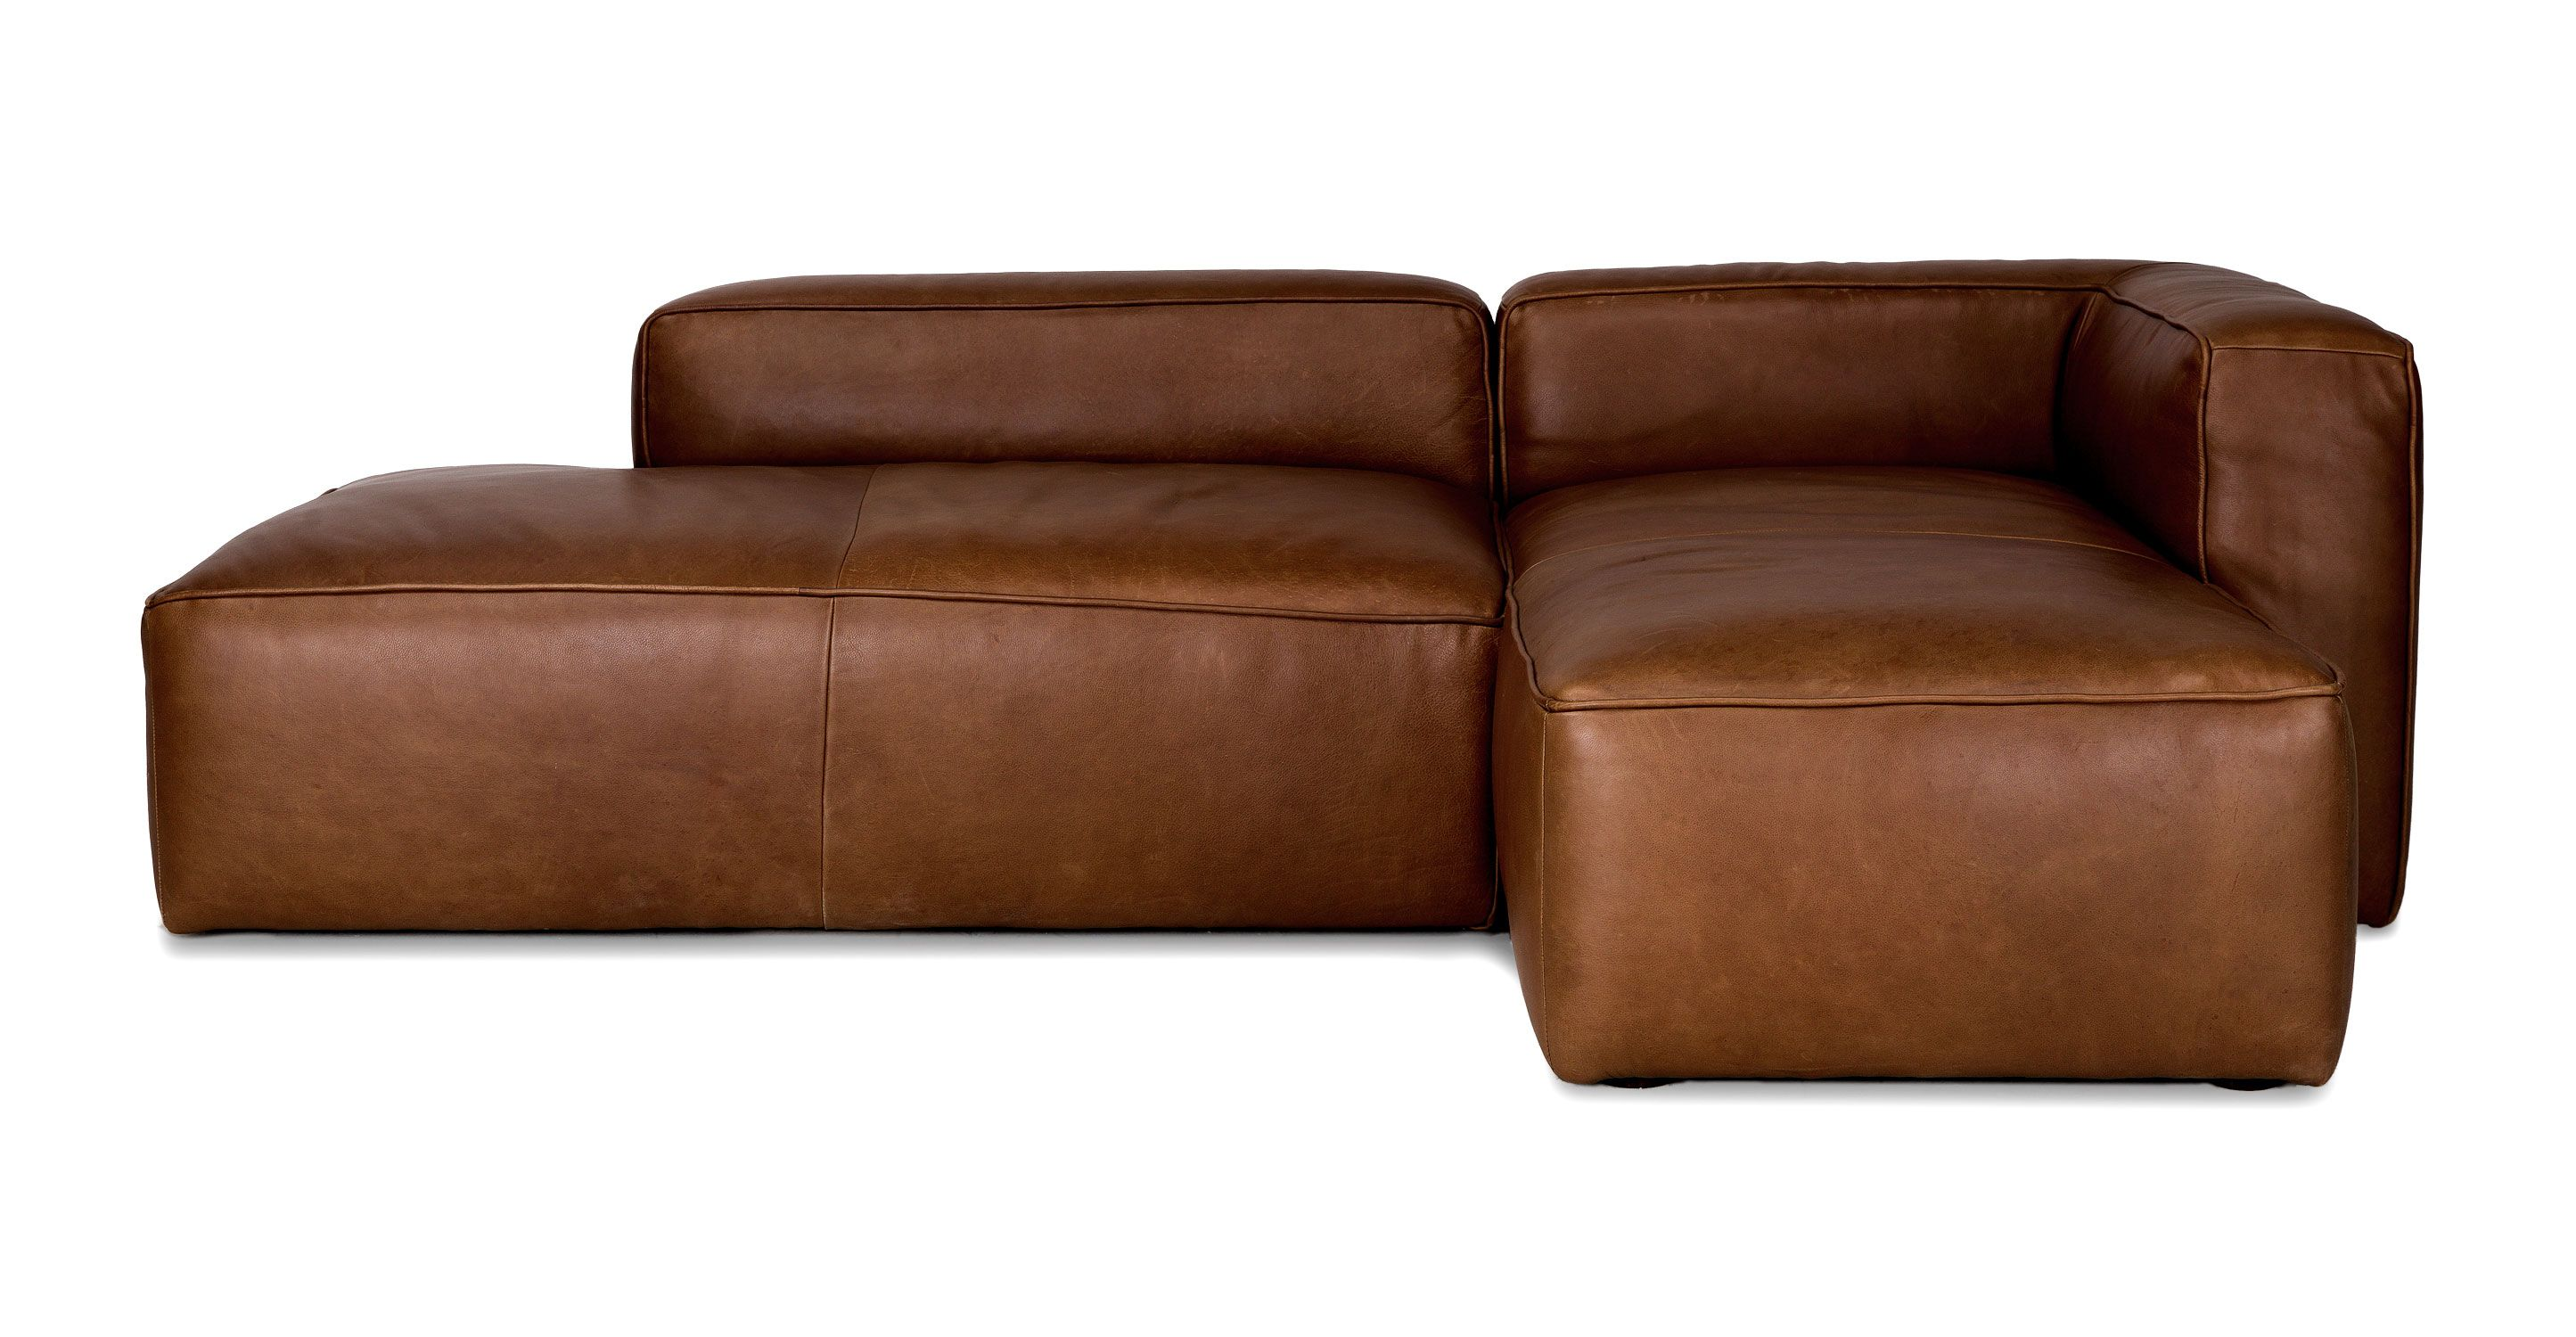 Best Mello Taos Brown Right Sectional Sofas Article 640 x 480